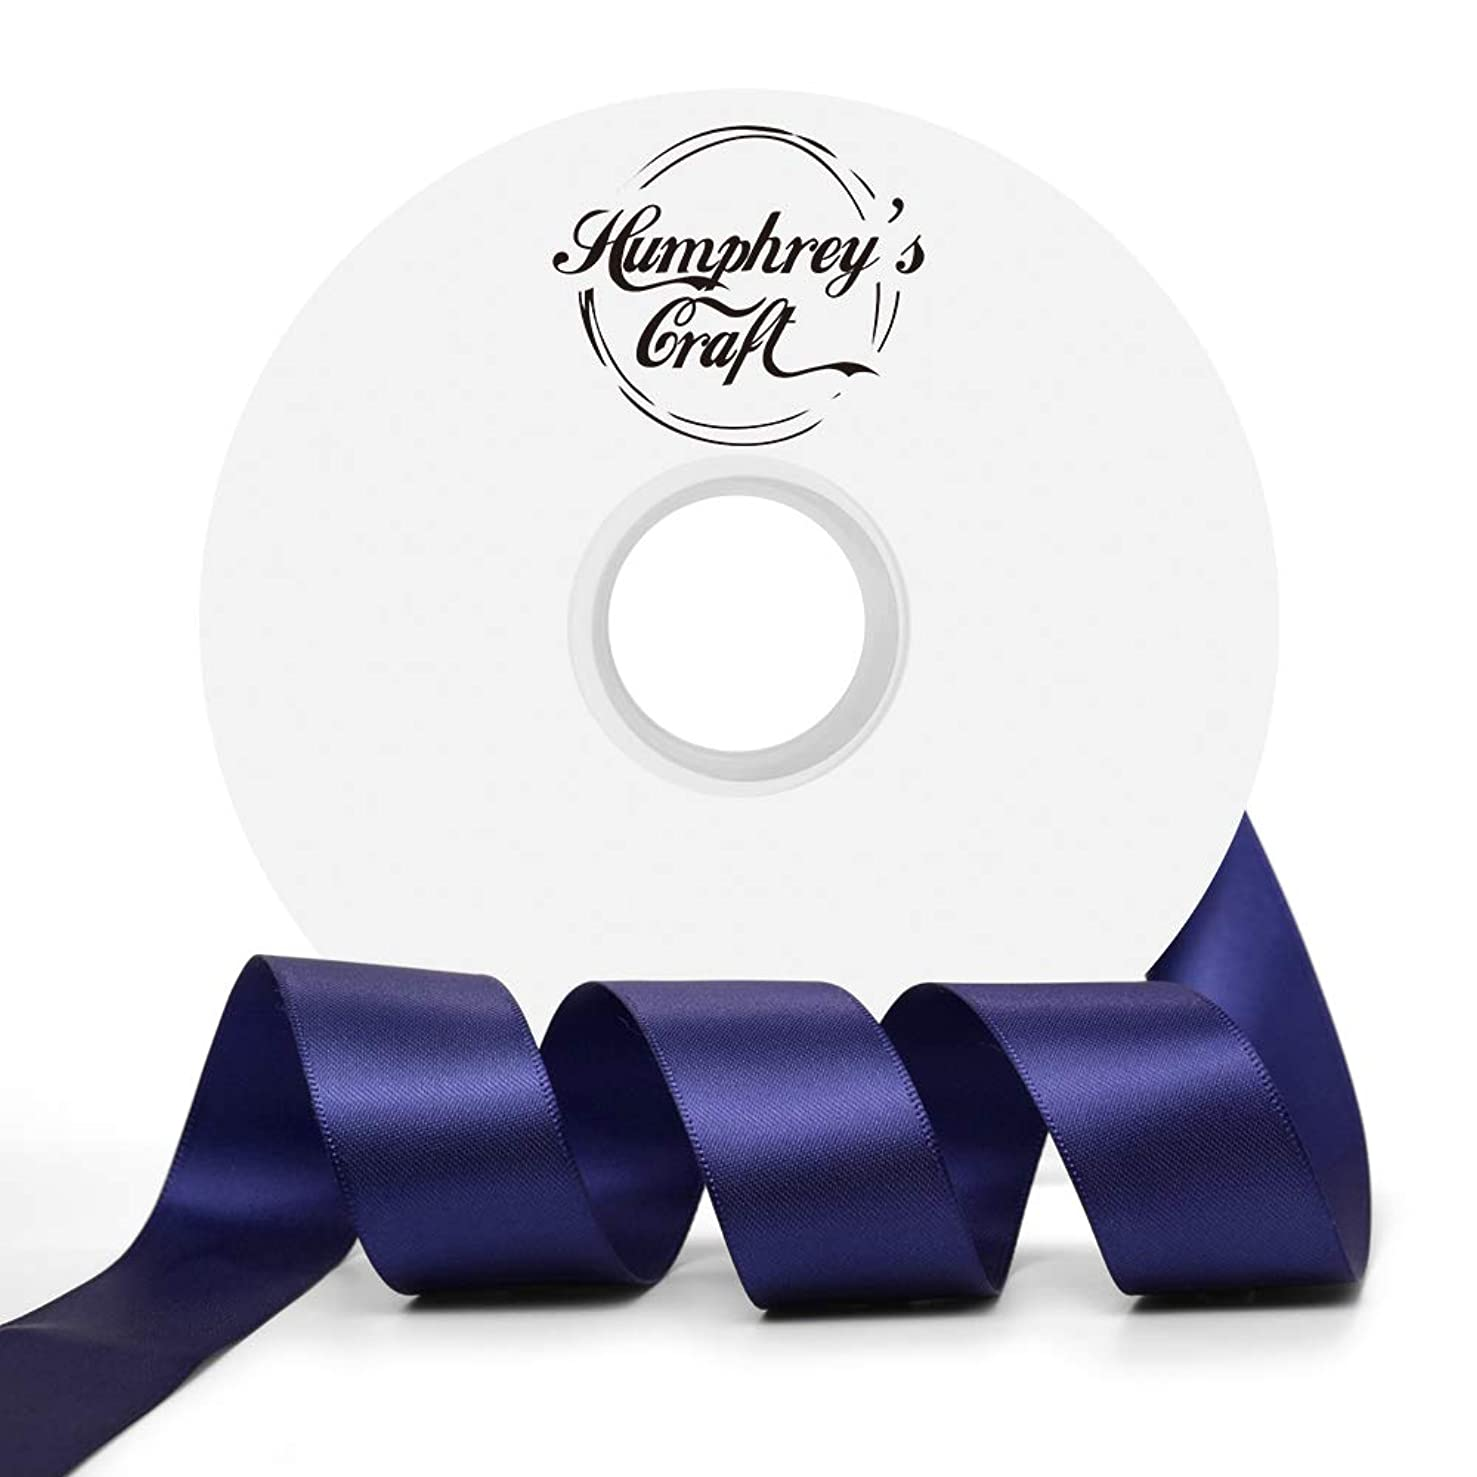 Humphrey's Craft 1-inch Double Face Solid Satin Ribbon 100% Polyester Ribbon Roll-50 Yard (Ink Blue)